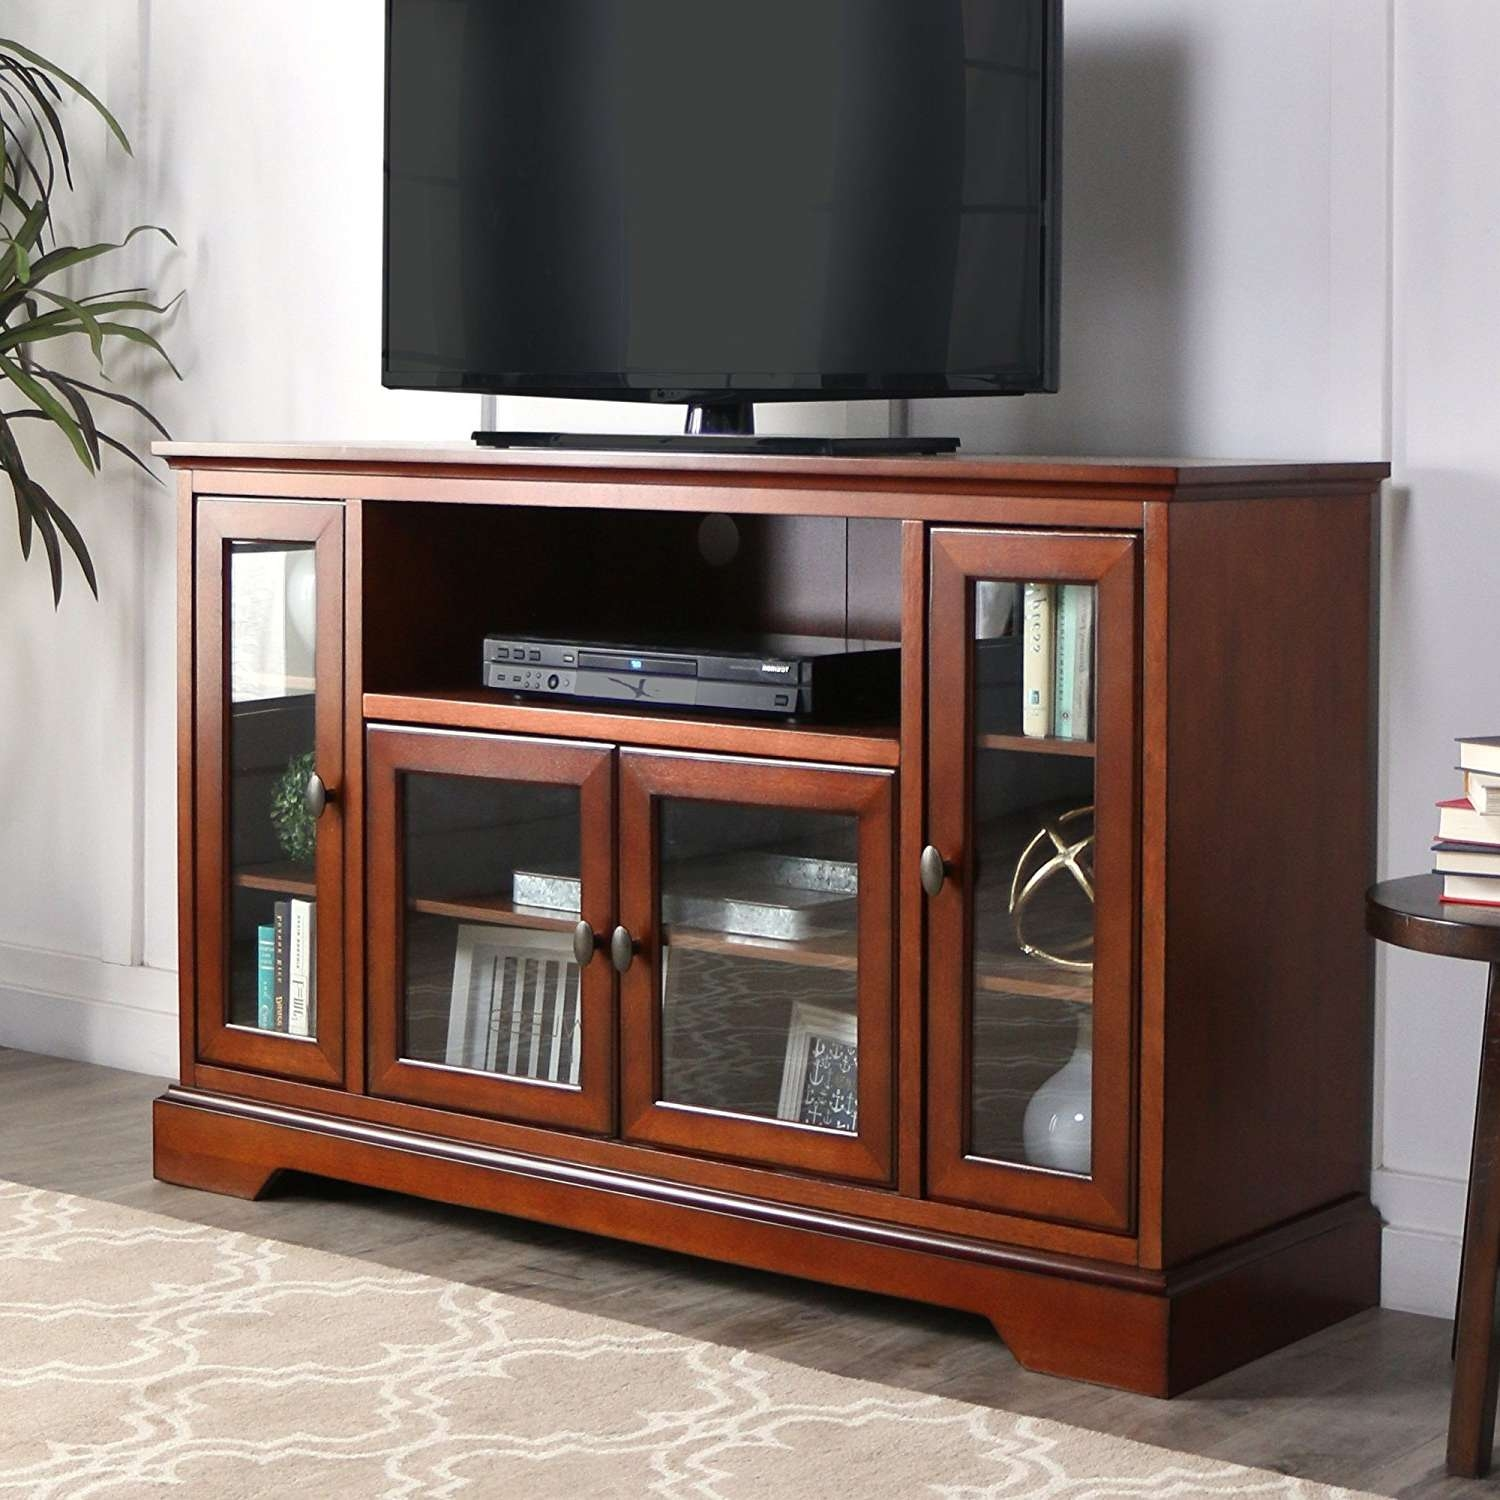 Perfect Walker Edison Highboy Tv Stand 99 For Home Decoration Throughout Tv Stands 38 Inches Wide (View 12 of 15)